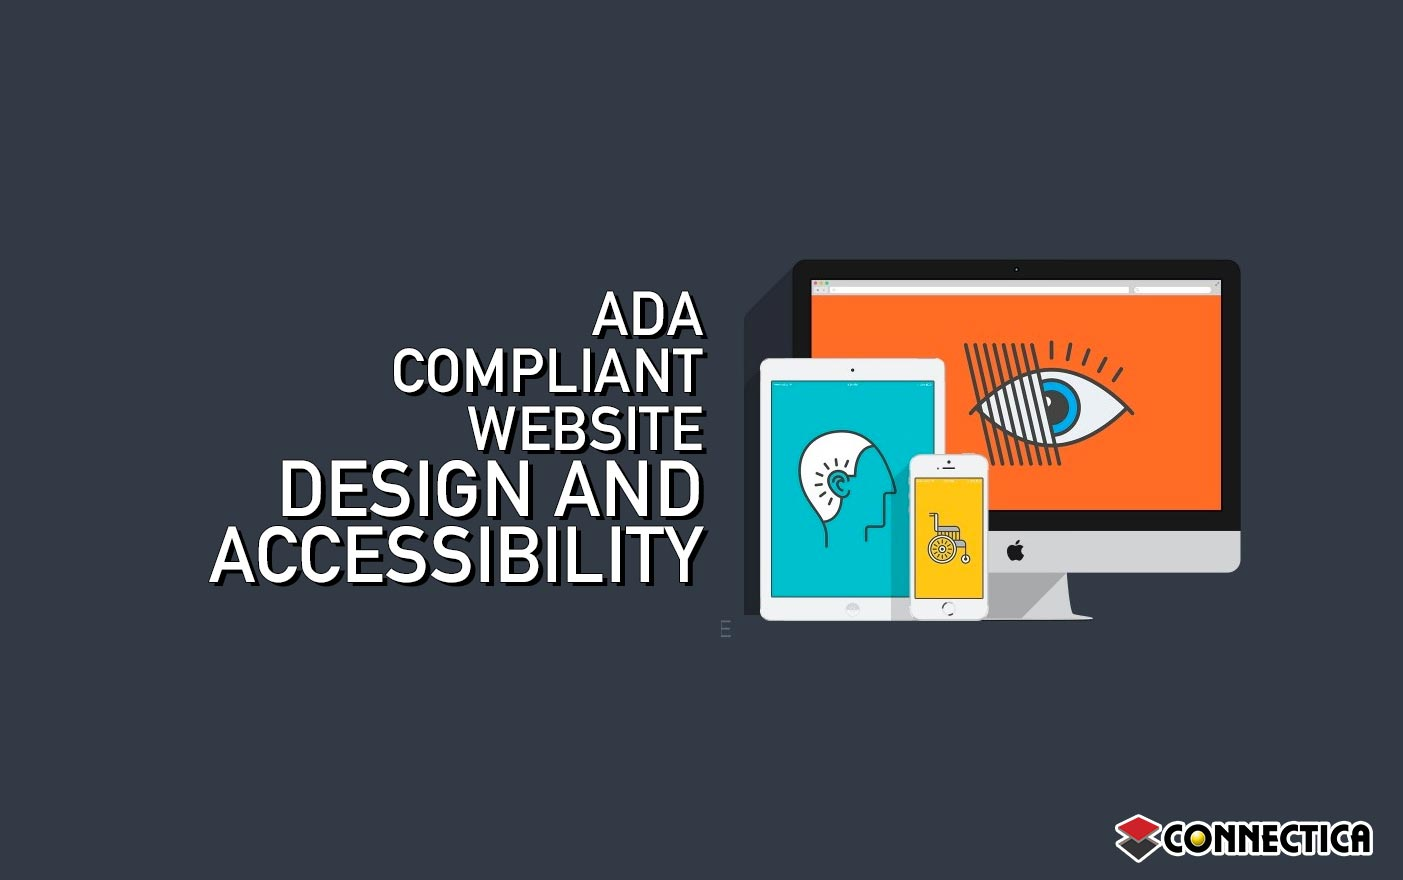 ADA Compliant Website Design And Accessibility